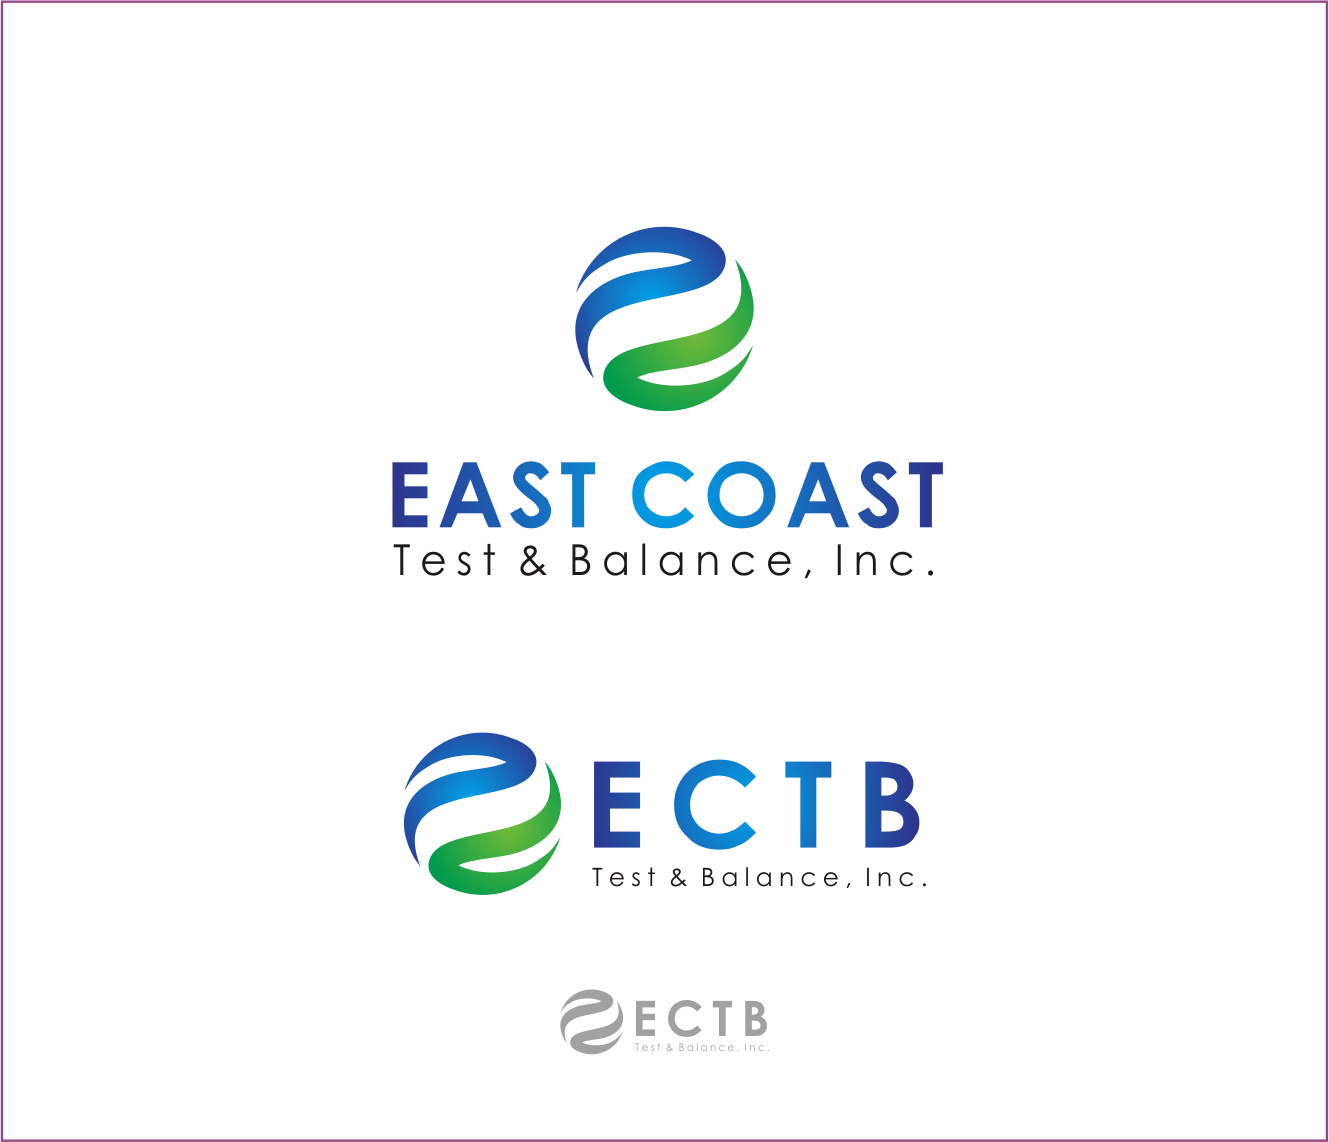 Logo Design by Armada Jamaluddin - Entry No. 56 in the Logo Design Contest Logo Design for East Coast Test & Balance, Inc. (ECTB).